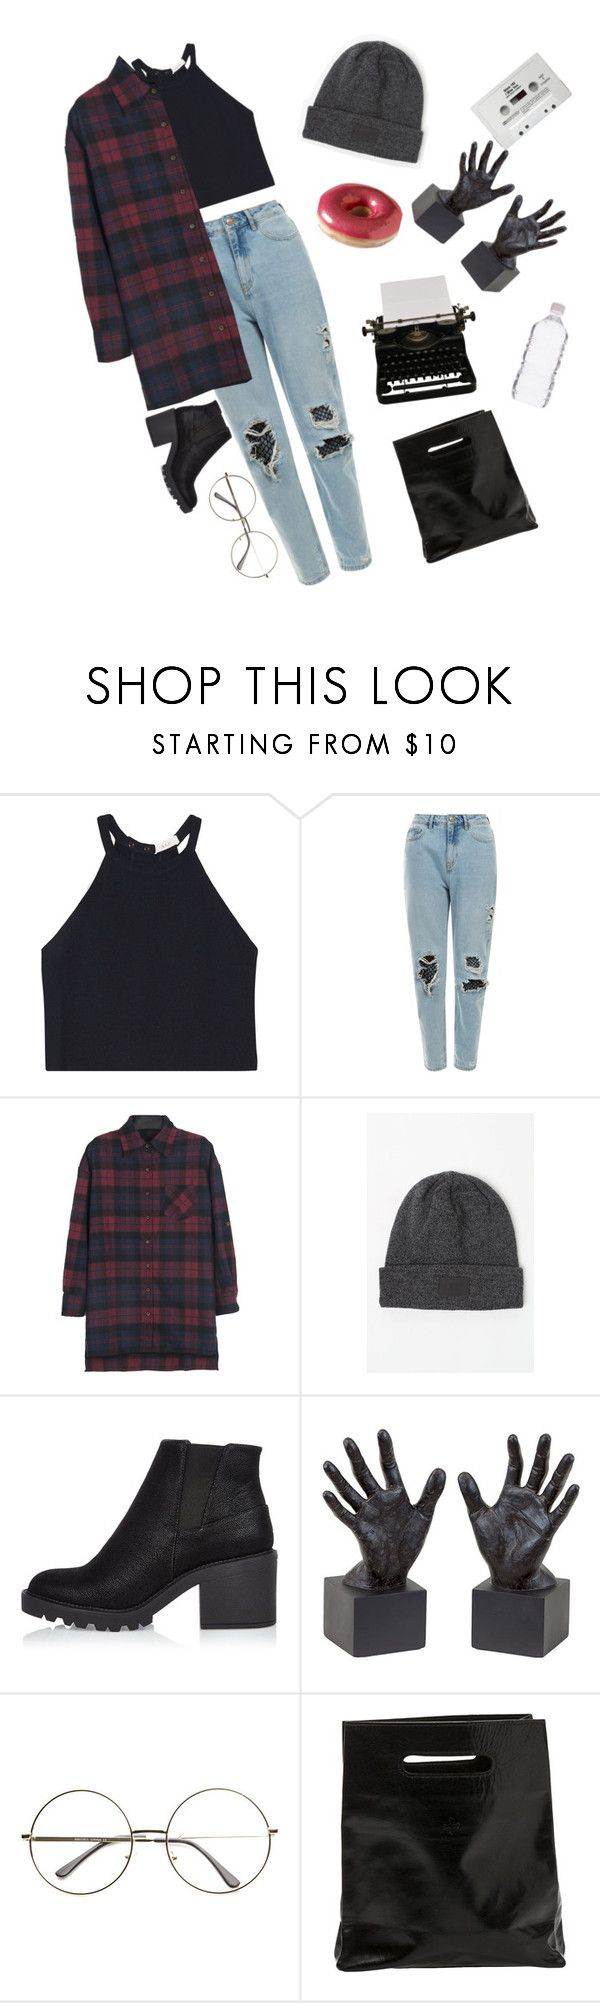 """""""Untitled #314"""" by obrien91 ❤ liked on Polyvore featuring A.L.C., OBEY Clothing, River Island, Dot & Bo, Marie Turnor and polyvorerevolution"""